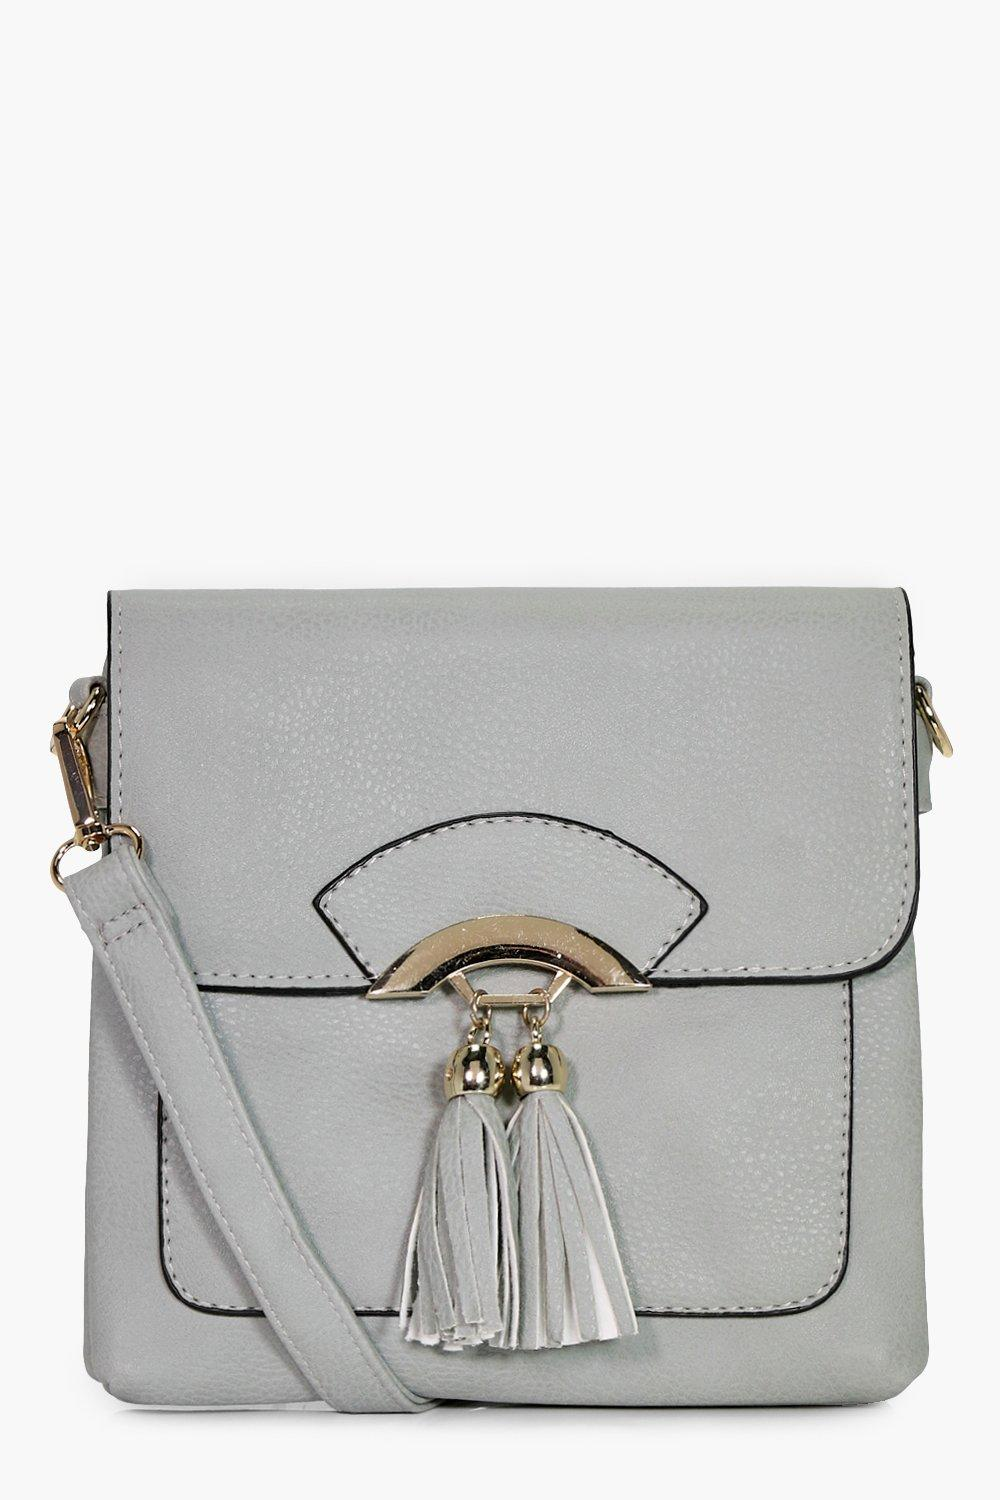 Double Tassel Cross Body Bag - grey - Olivia Doubl